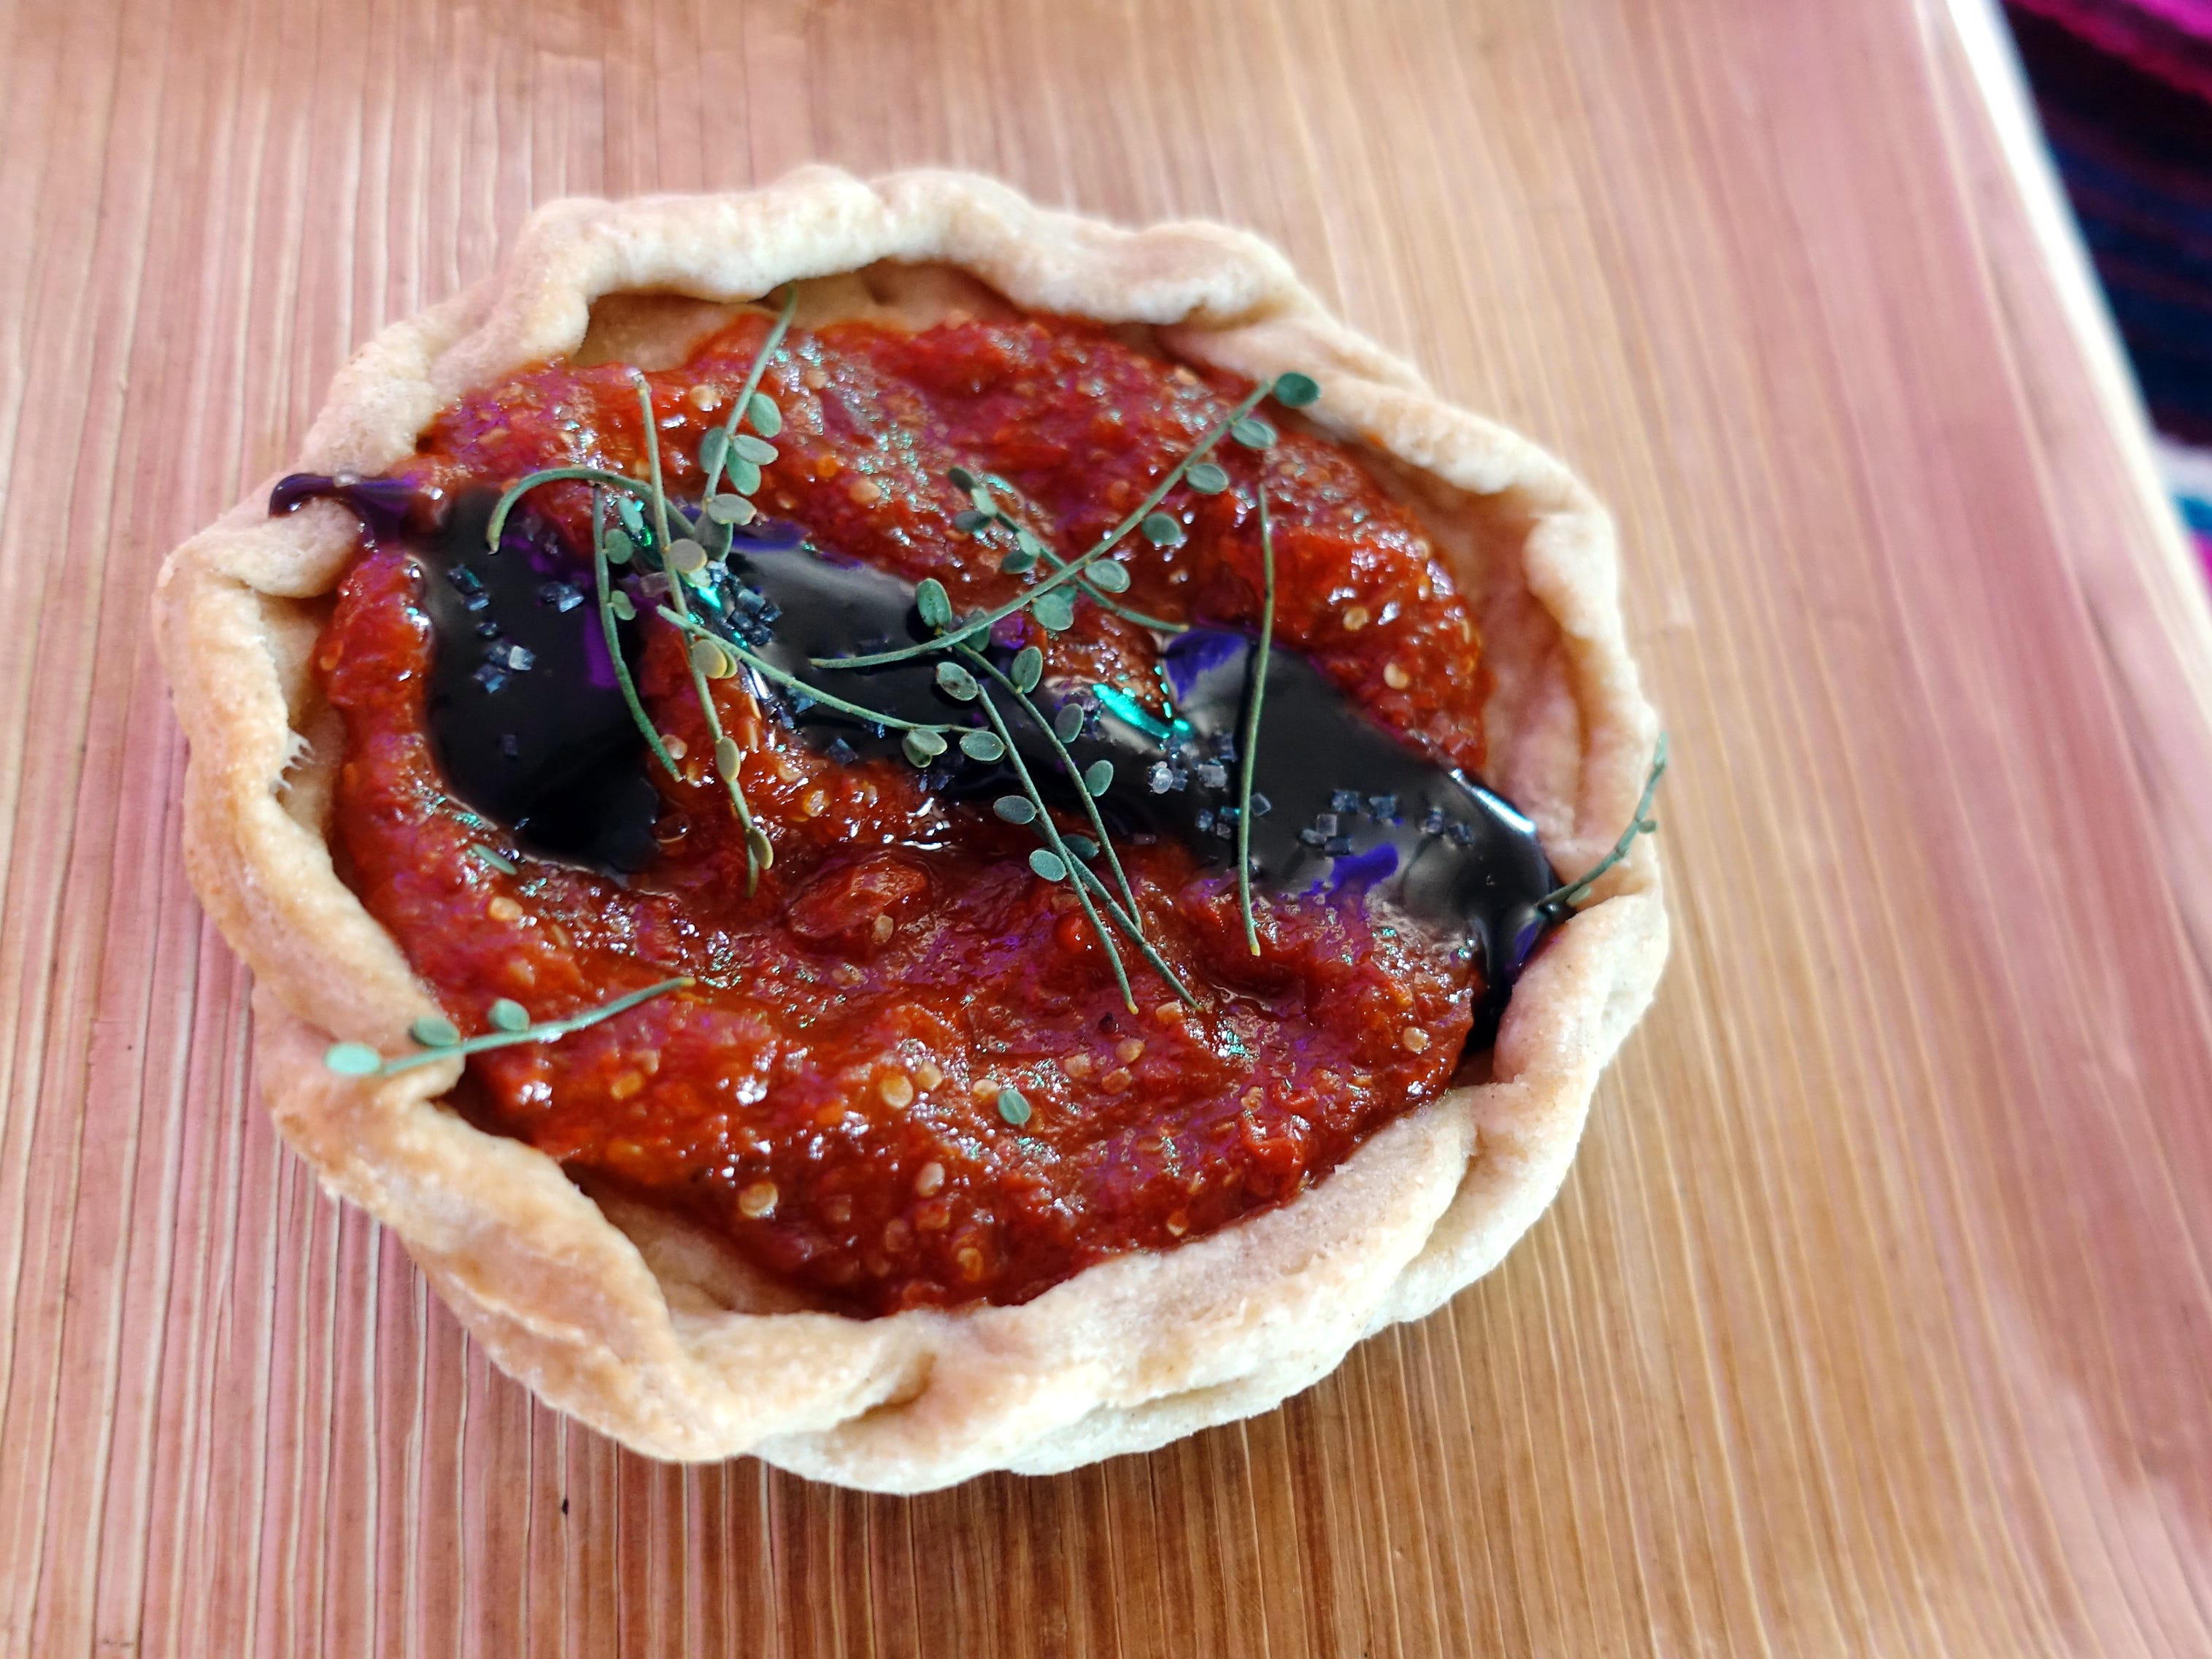 Wolfberry tart with Pima wheat crust, mesquite chocolate and palo verde from Cotton & Copper at the 2019 Devour Culinary Classic at the Desert Botanical Garden in Phoenix.